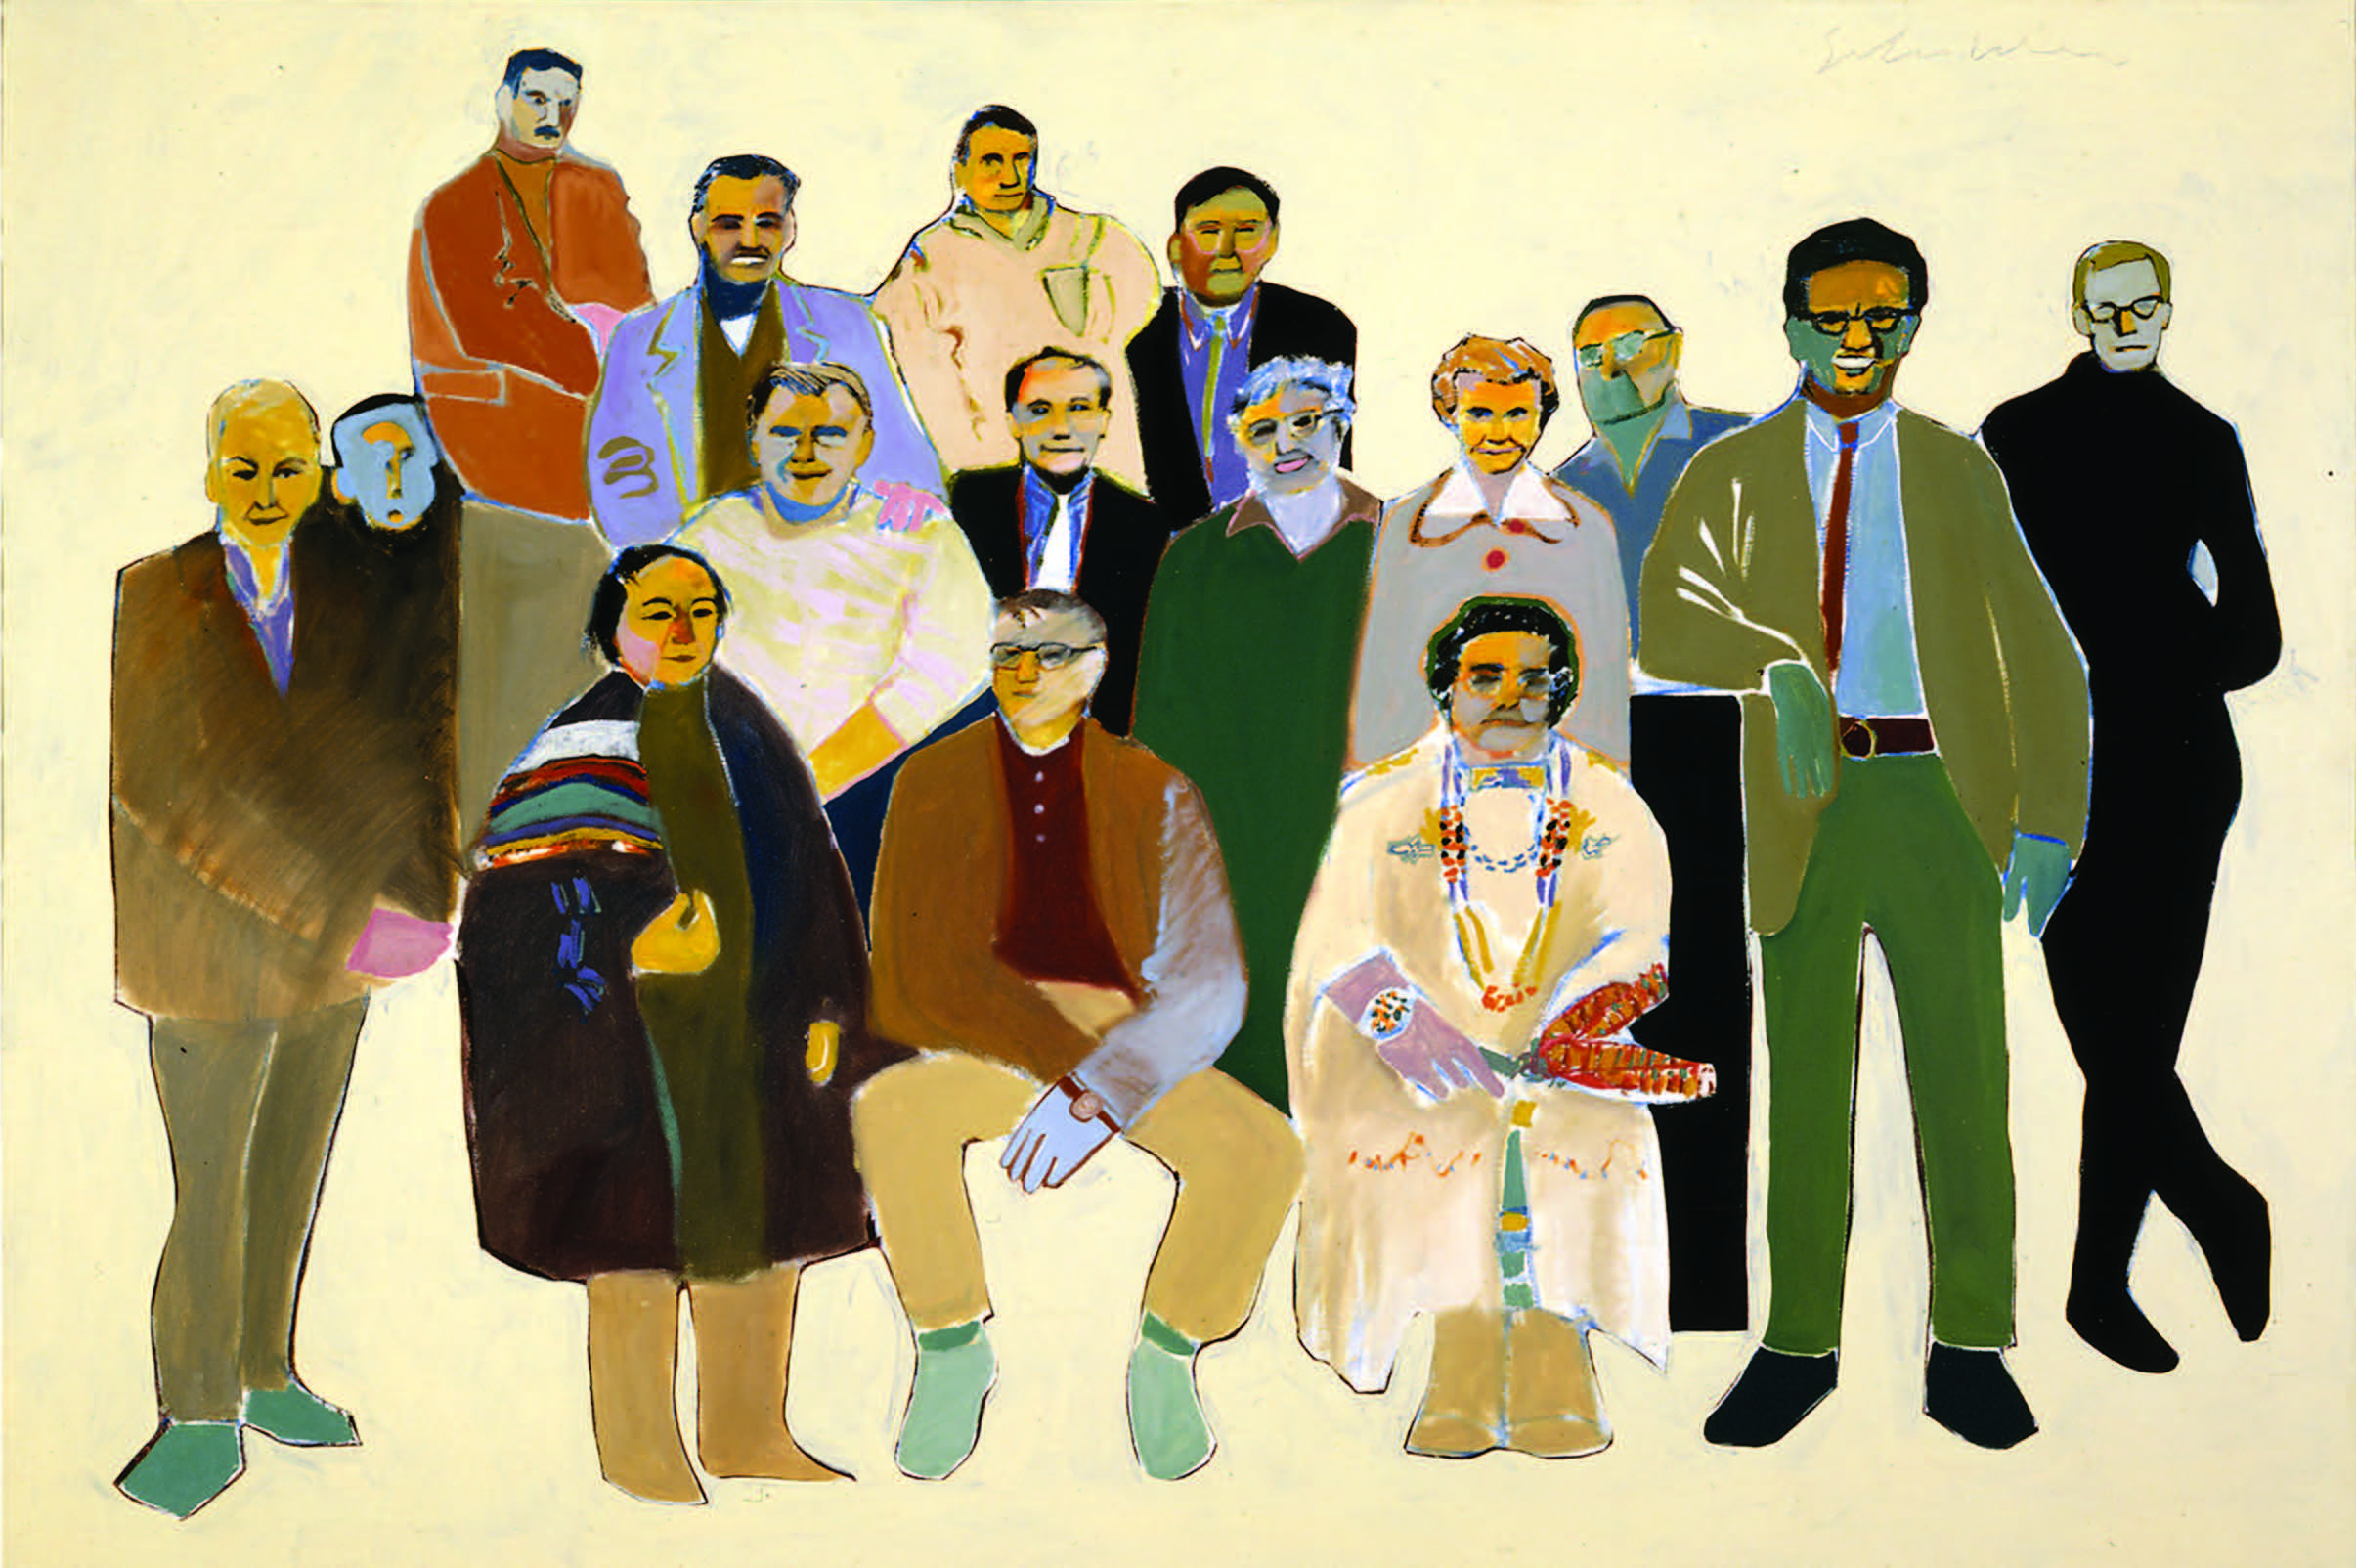 Fritz Scholder, Arts Faculty at the Institute of American Indian Arts at 4:15 pm, 1968. Left to right: (first row) Otelie Loloma, Terry Schubert, Josephine Wapp, Fritz Scholder (standing); (second row) Seymour Tubis, Neil Parsons, Rolland Meinholtz, Lloyd Kiva New, Terry Allen, Kay Wiest, Allan Houser, Michael McCormick; (third row) Ralph Pardington, Leo N. Bushman, James McGrath, Louis Ballard. Oil on canvas, 54 ½ × 71 ½ in. Collection of the New Mexico Museum of Art. Gift of Fritz Scholder, 1968 (2271.23P). Photograph by Blair Clark © Fritz Scholder Estate.